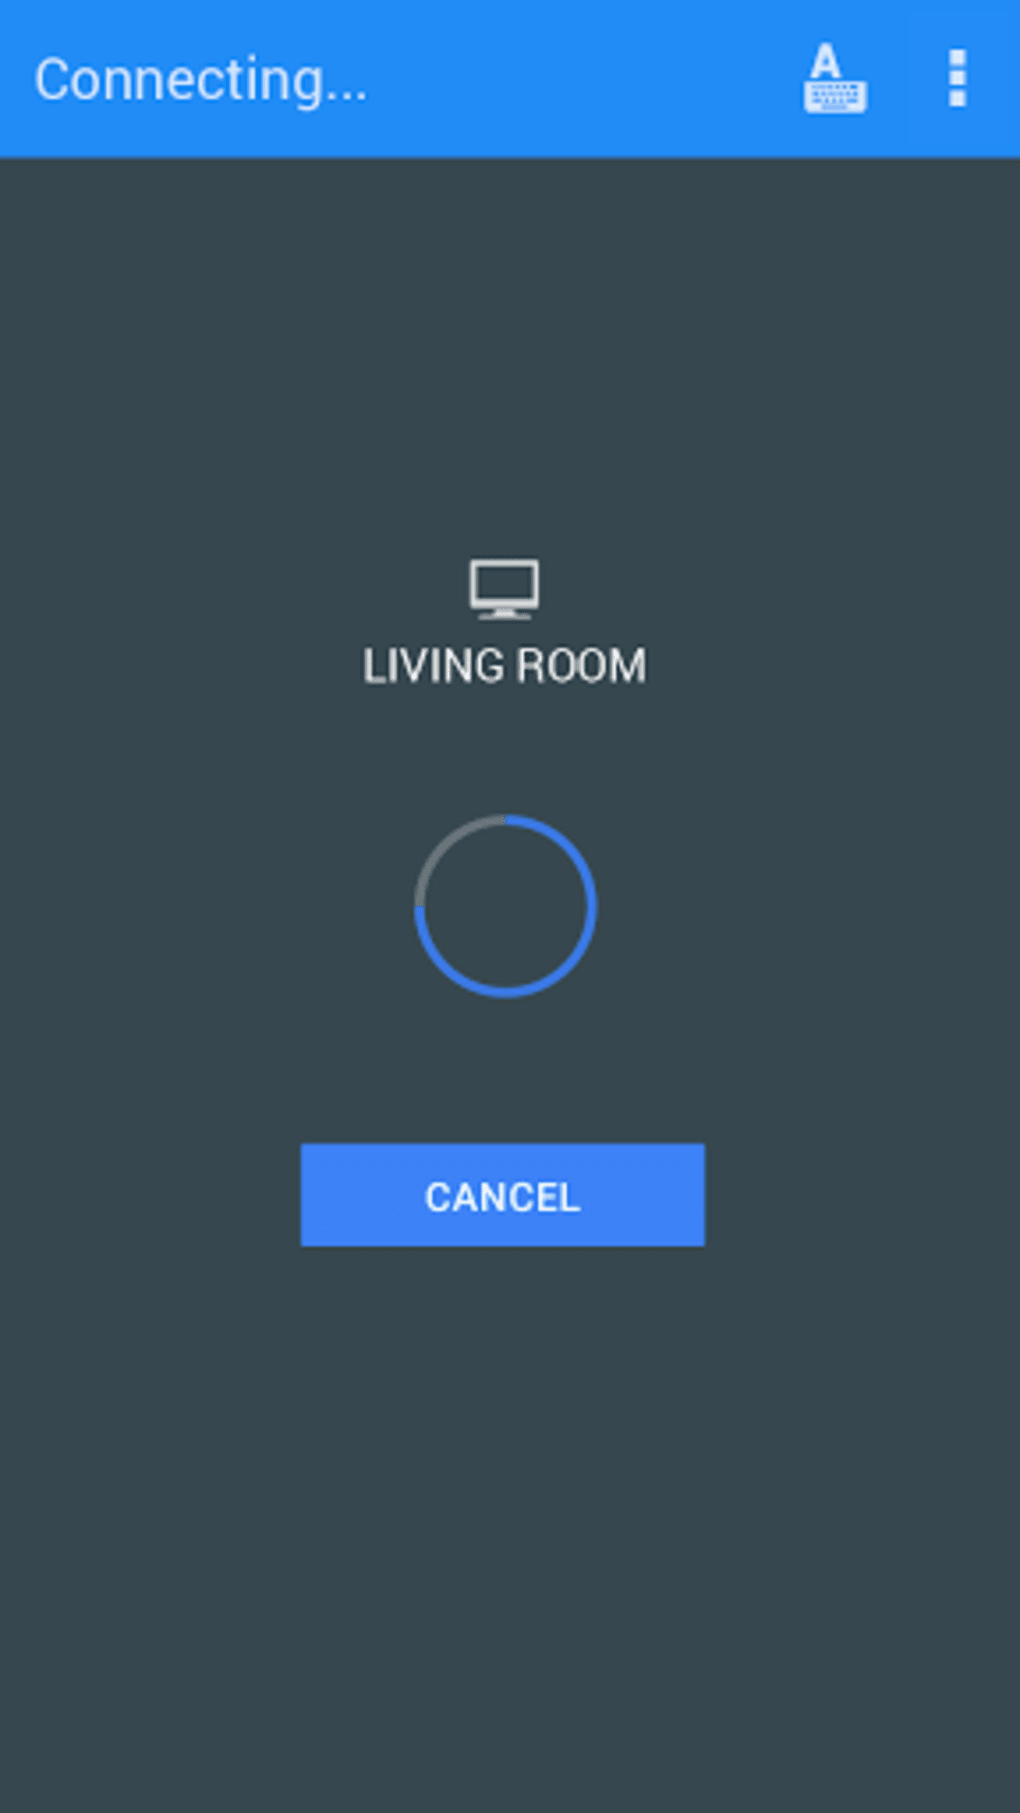 Android TV Remote Control (Android) - Download